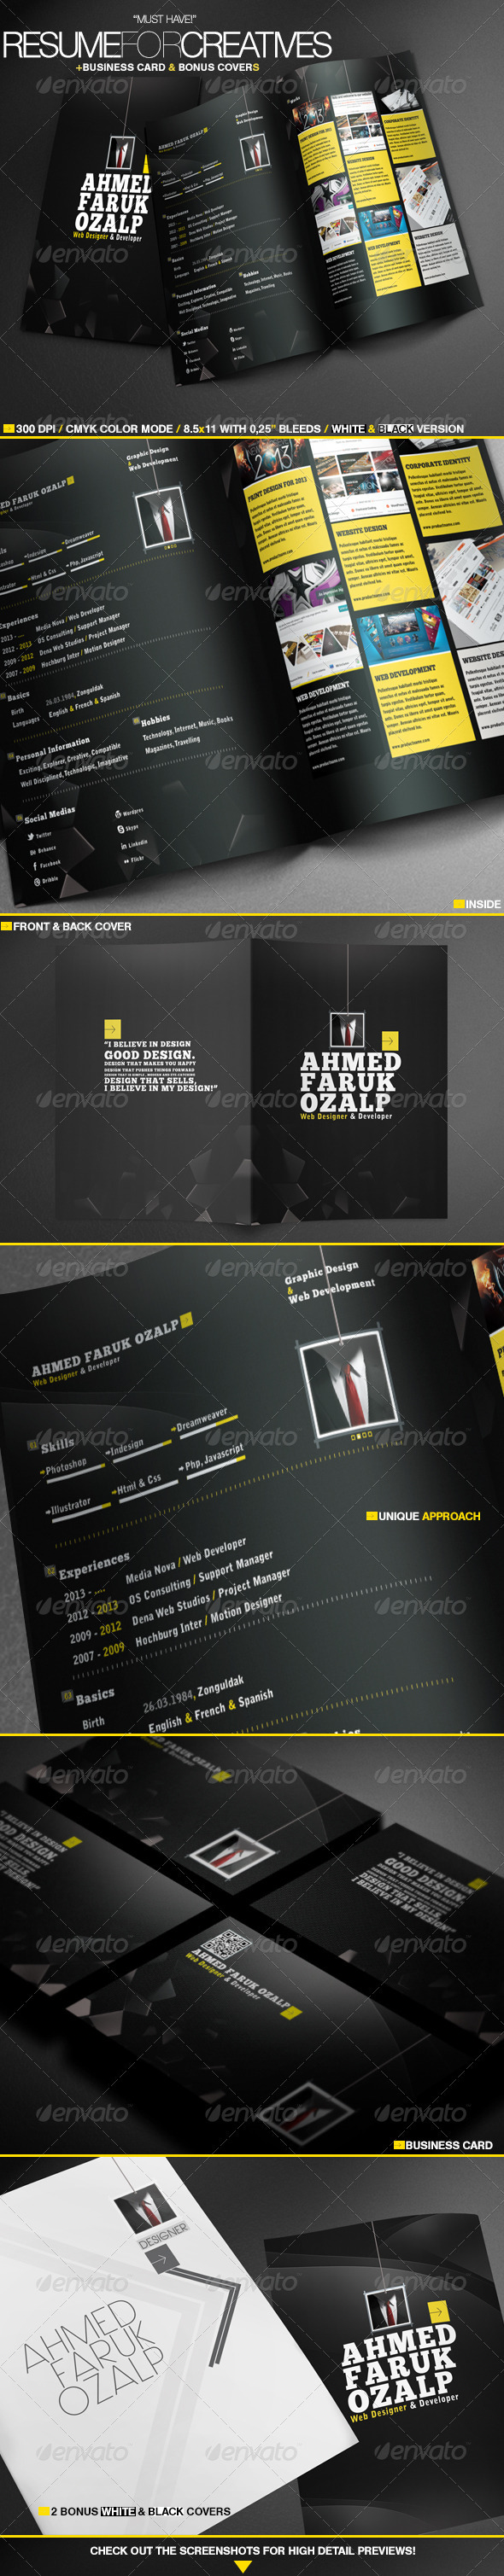 GraphicRiver Resume For Creatives & Bonus Templates 3641429